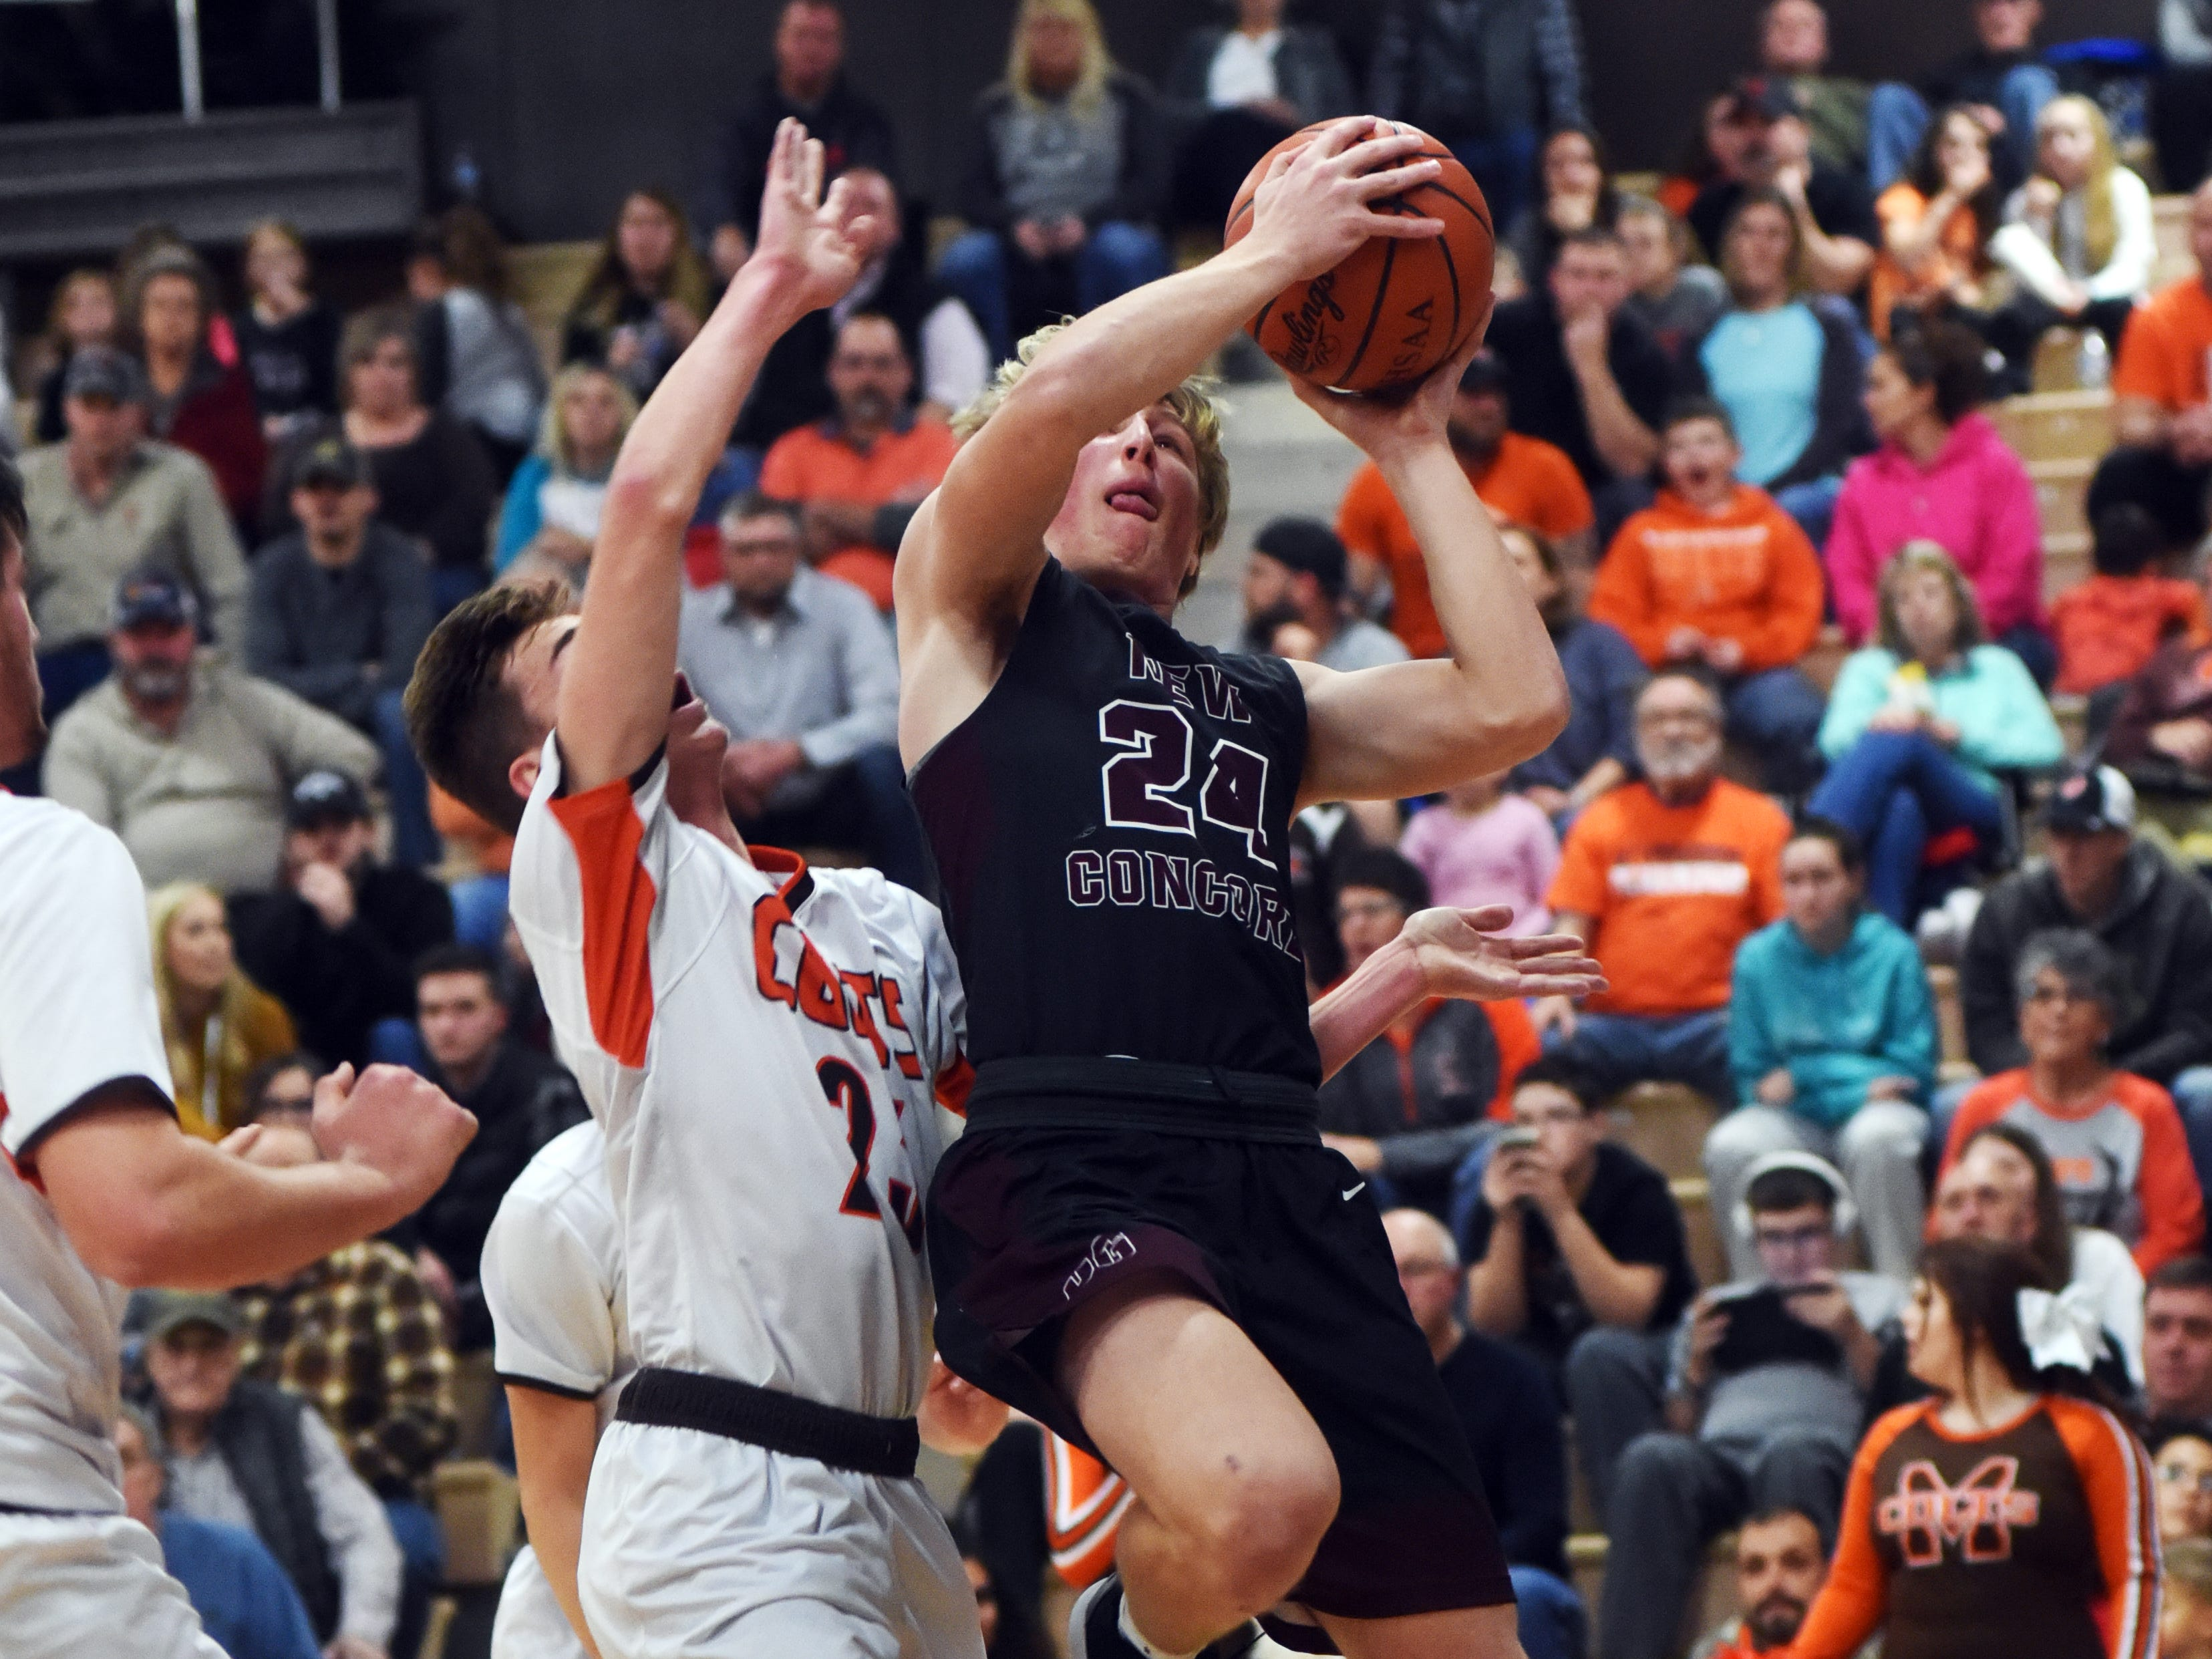 Reece Perkins, of John Glenn, goes up in the lane against Meadowbrook's Addy Black on Friday night in Byesville.